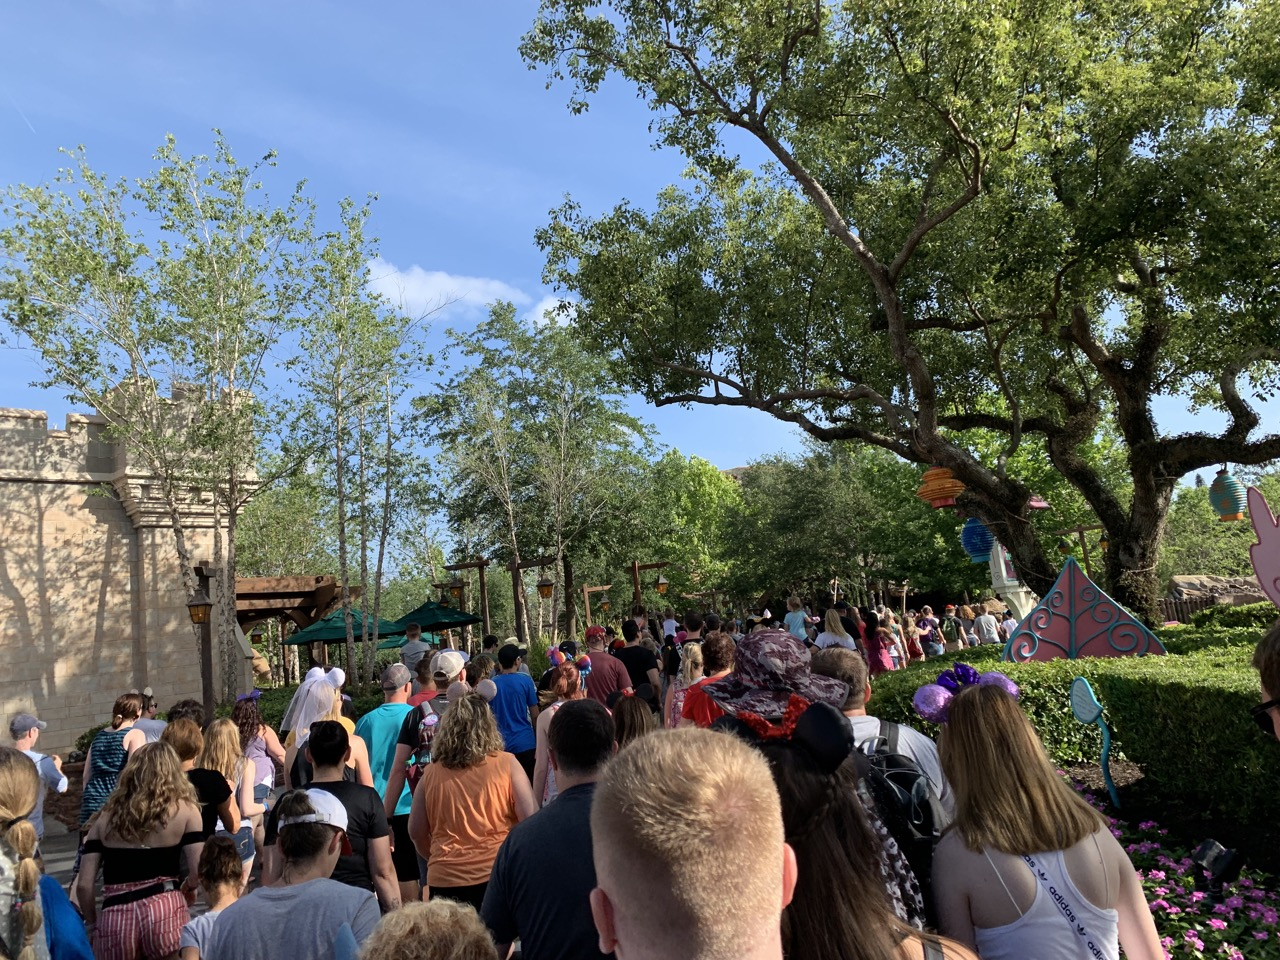 disney world trip report early summer 2019 day five 21 rope drop.jpeg